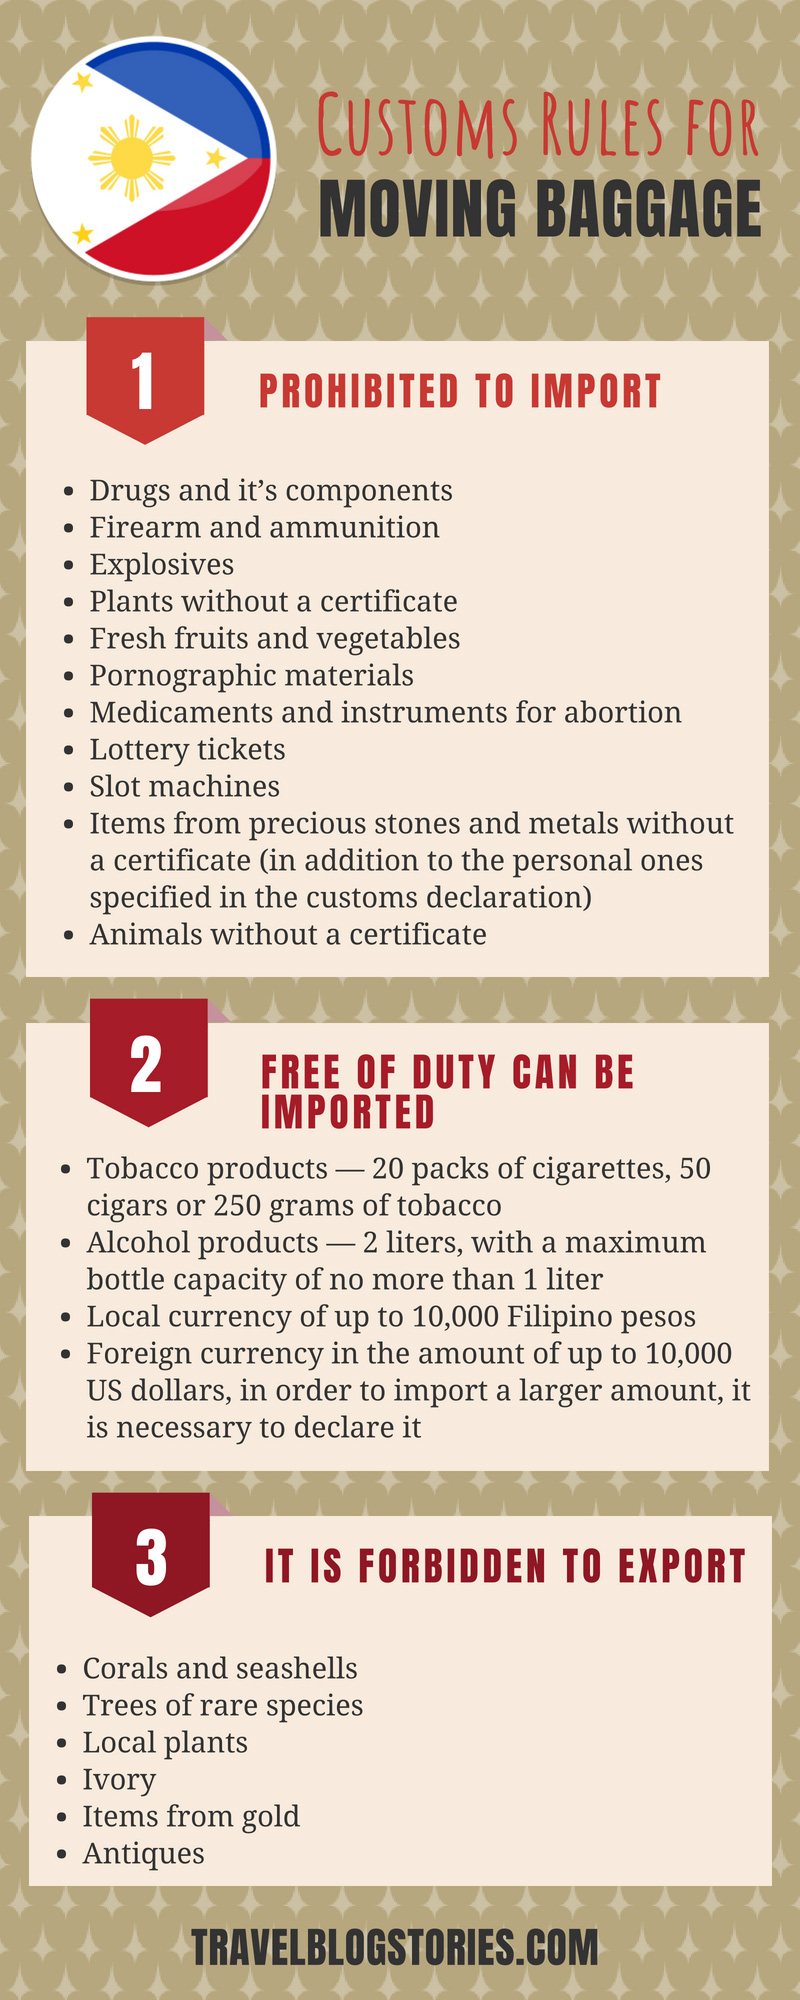 customs-rules-for-moving-baggage-philippines